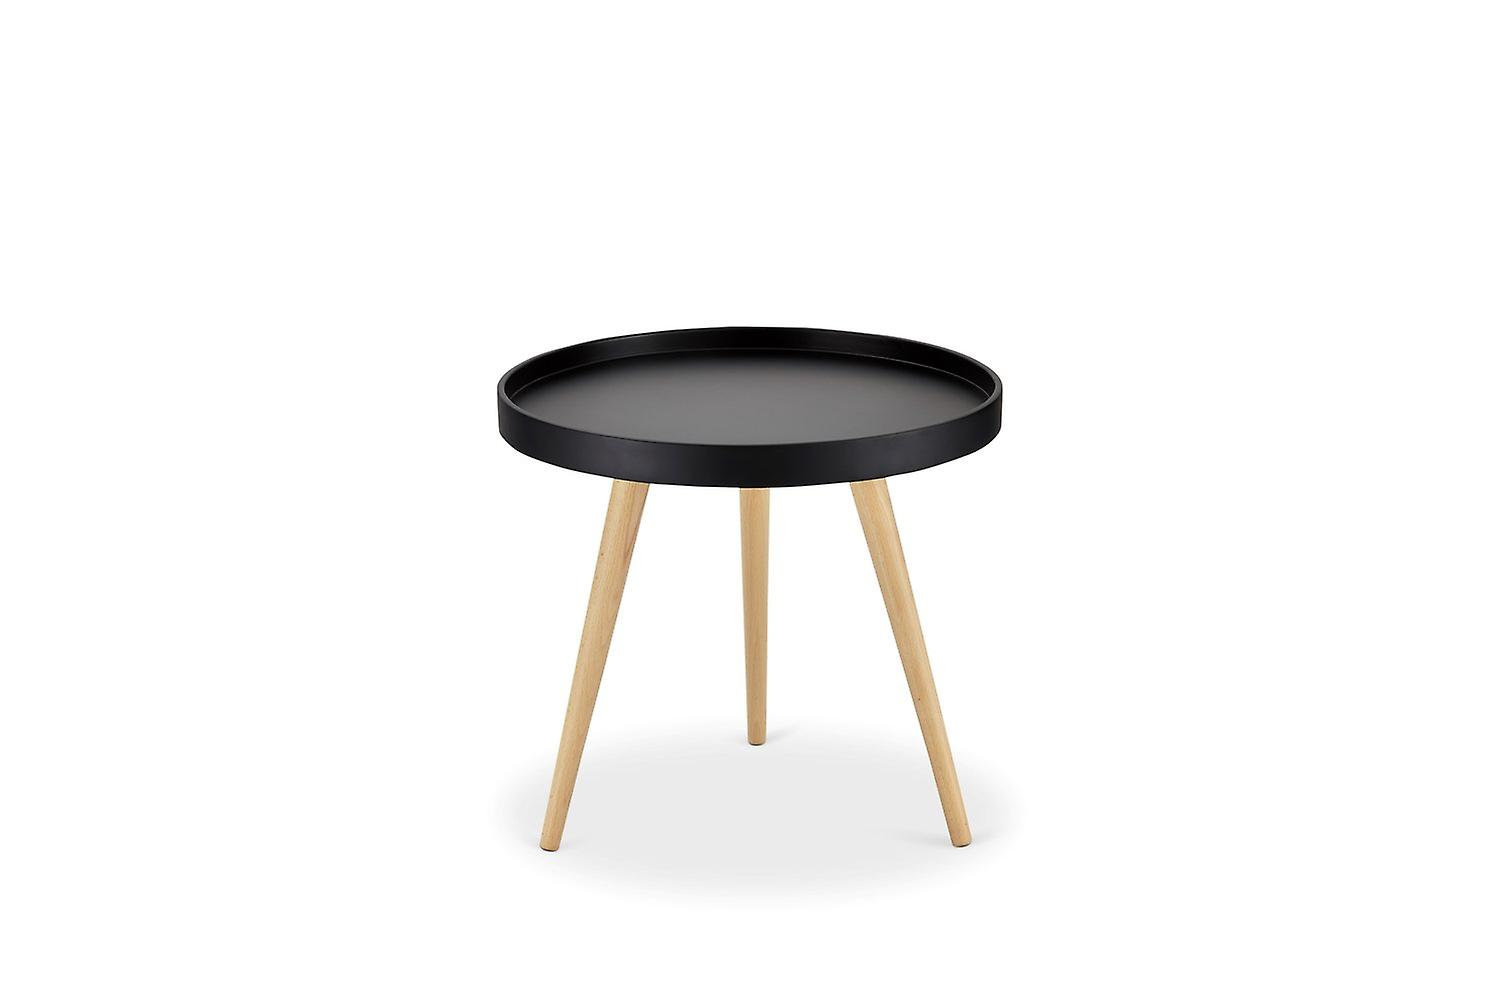 Furnhouse Opus Coffee Table Small, Black Top, Natural Wooden Legs, 50x50x45 cm